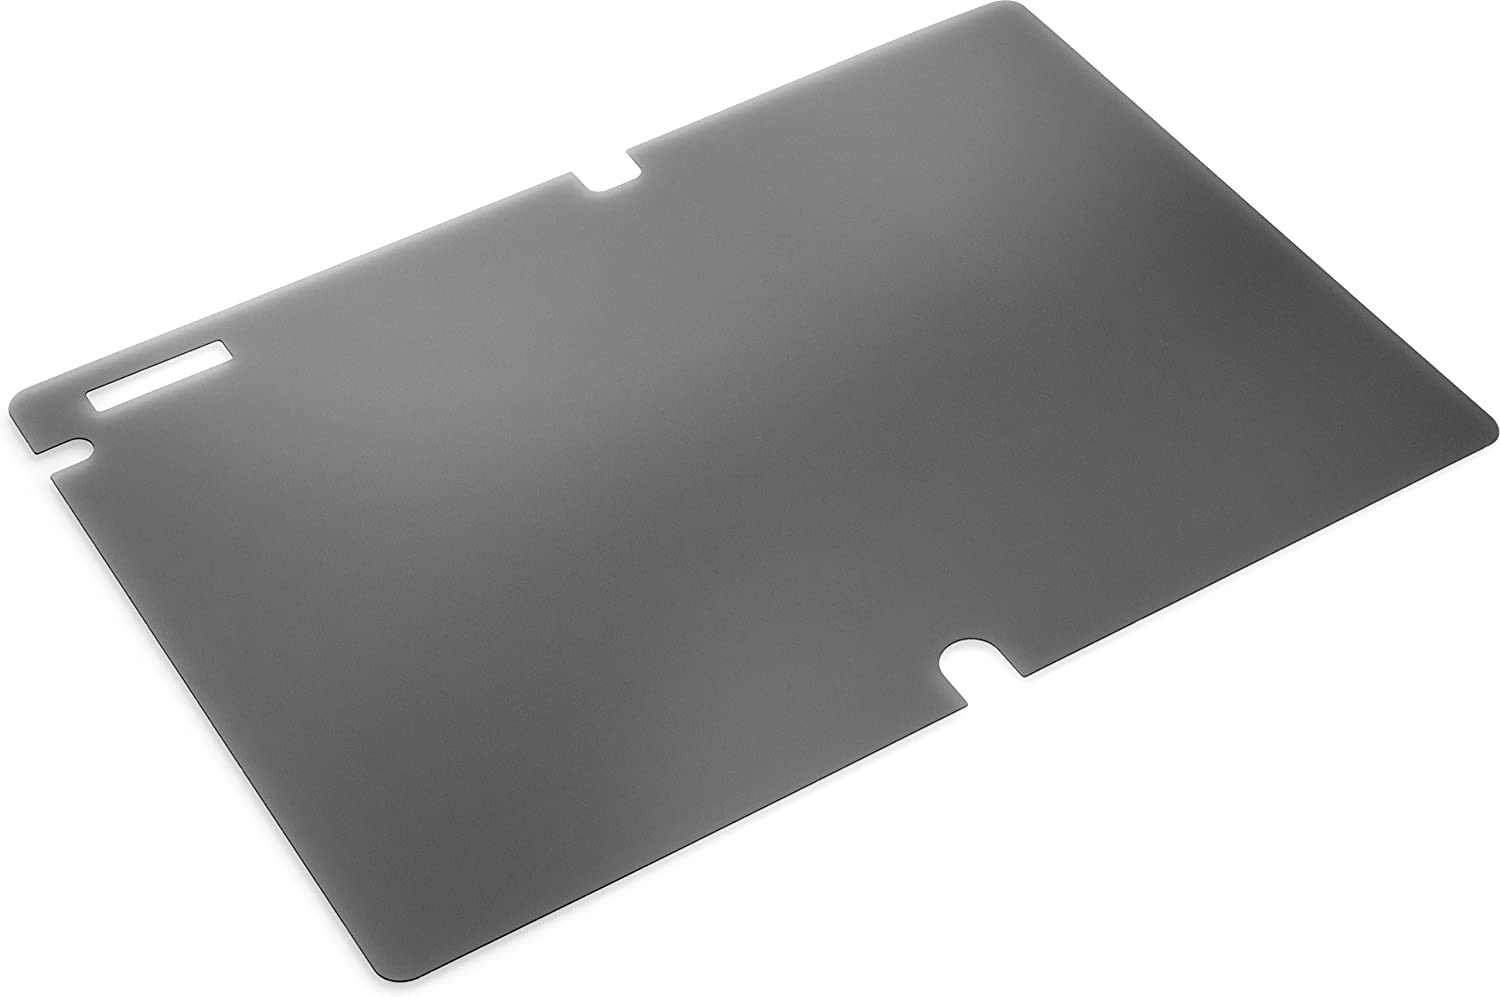 HP W7C36AA Notebook Privacy Screen - Notebook Privacy Filter - 12 inch - for Elite x2 1011 G1, 1012 G1, 1012 G2